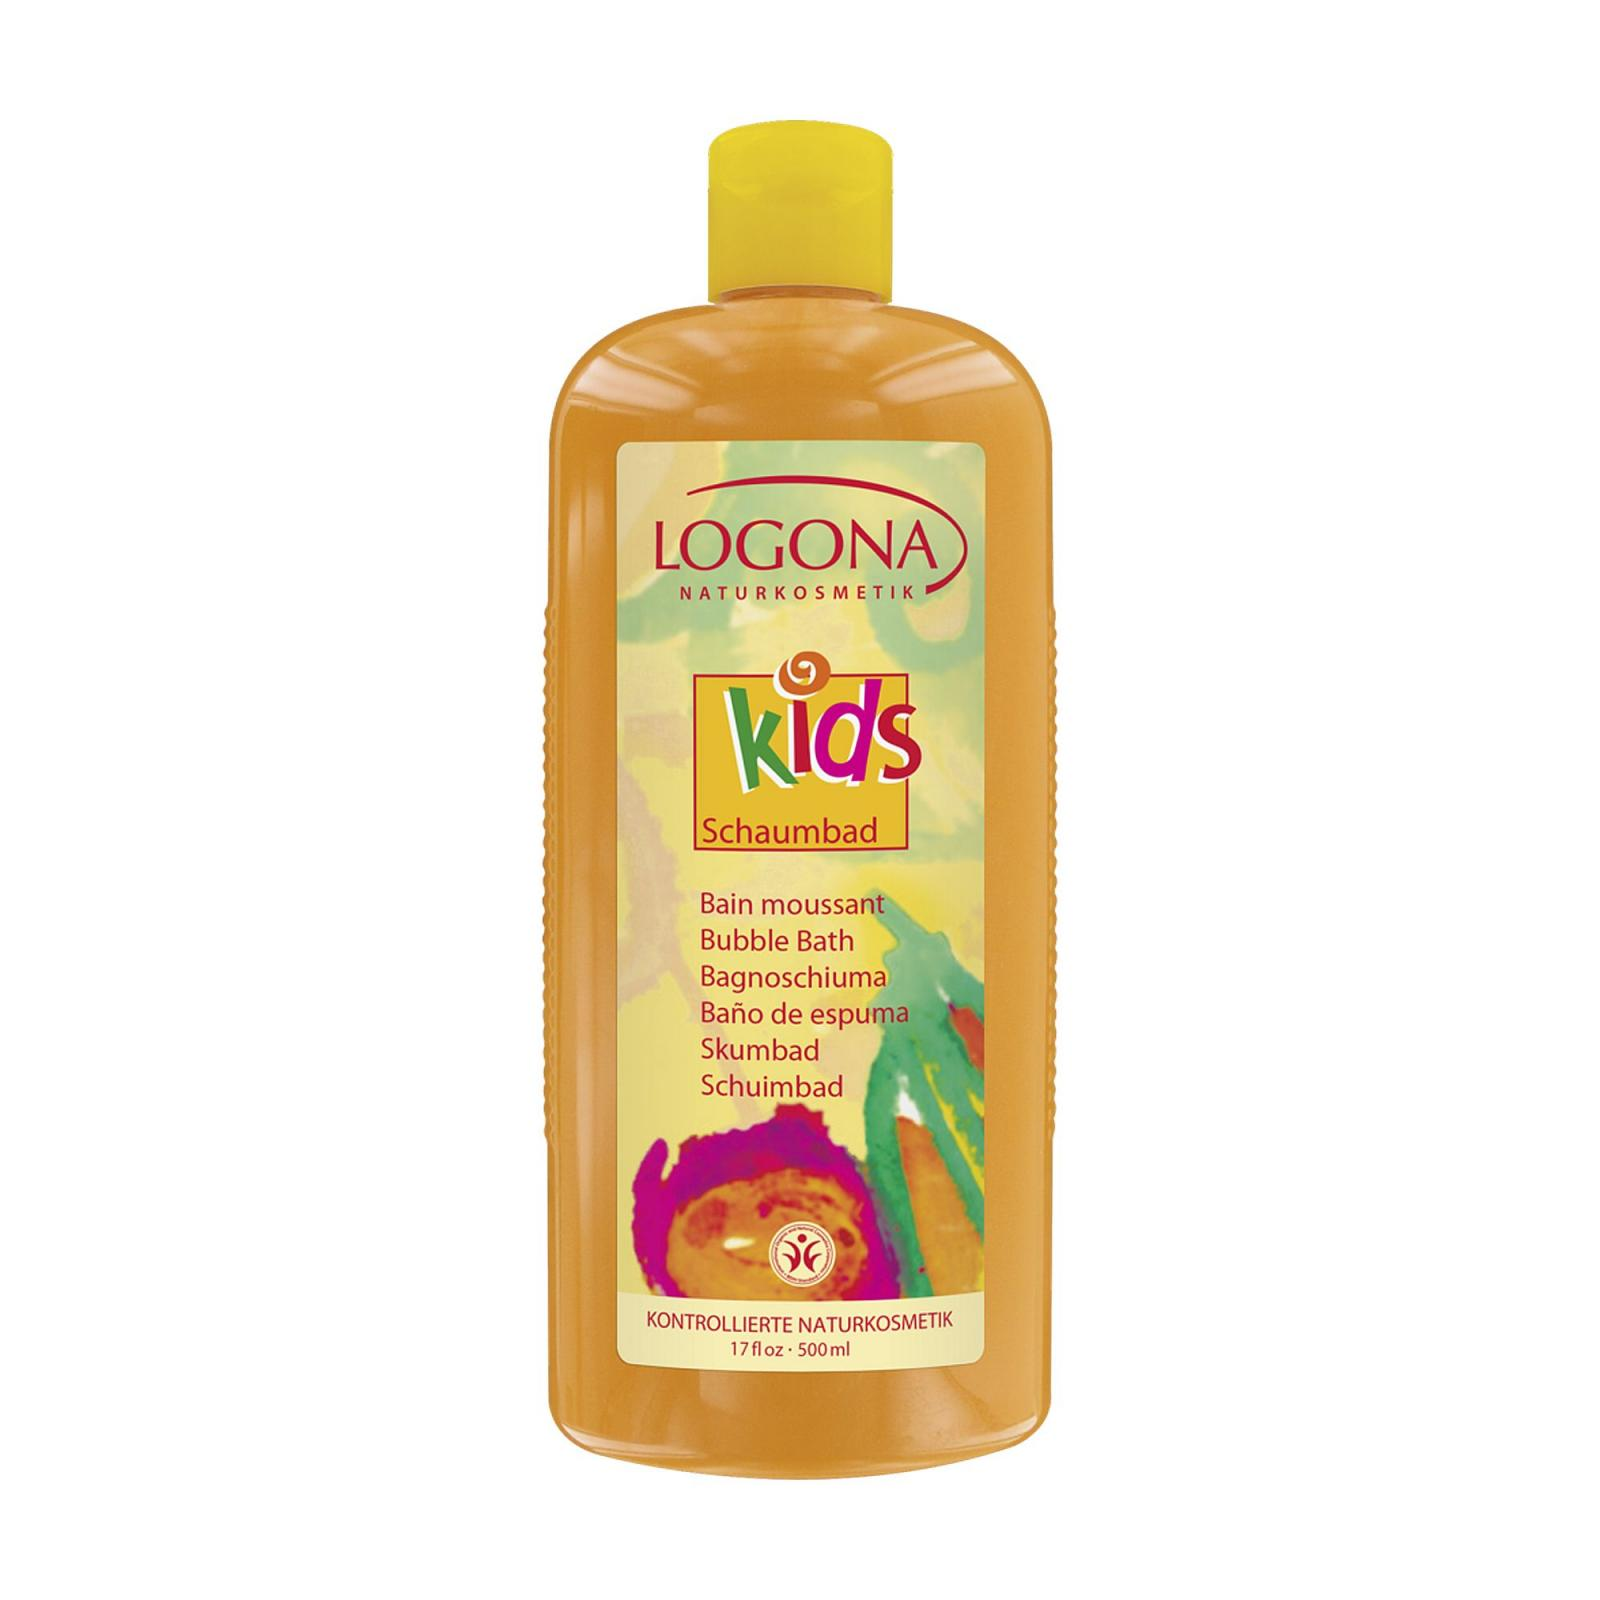 Logona Pěna do koupele, Kids 500 ml